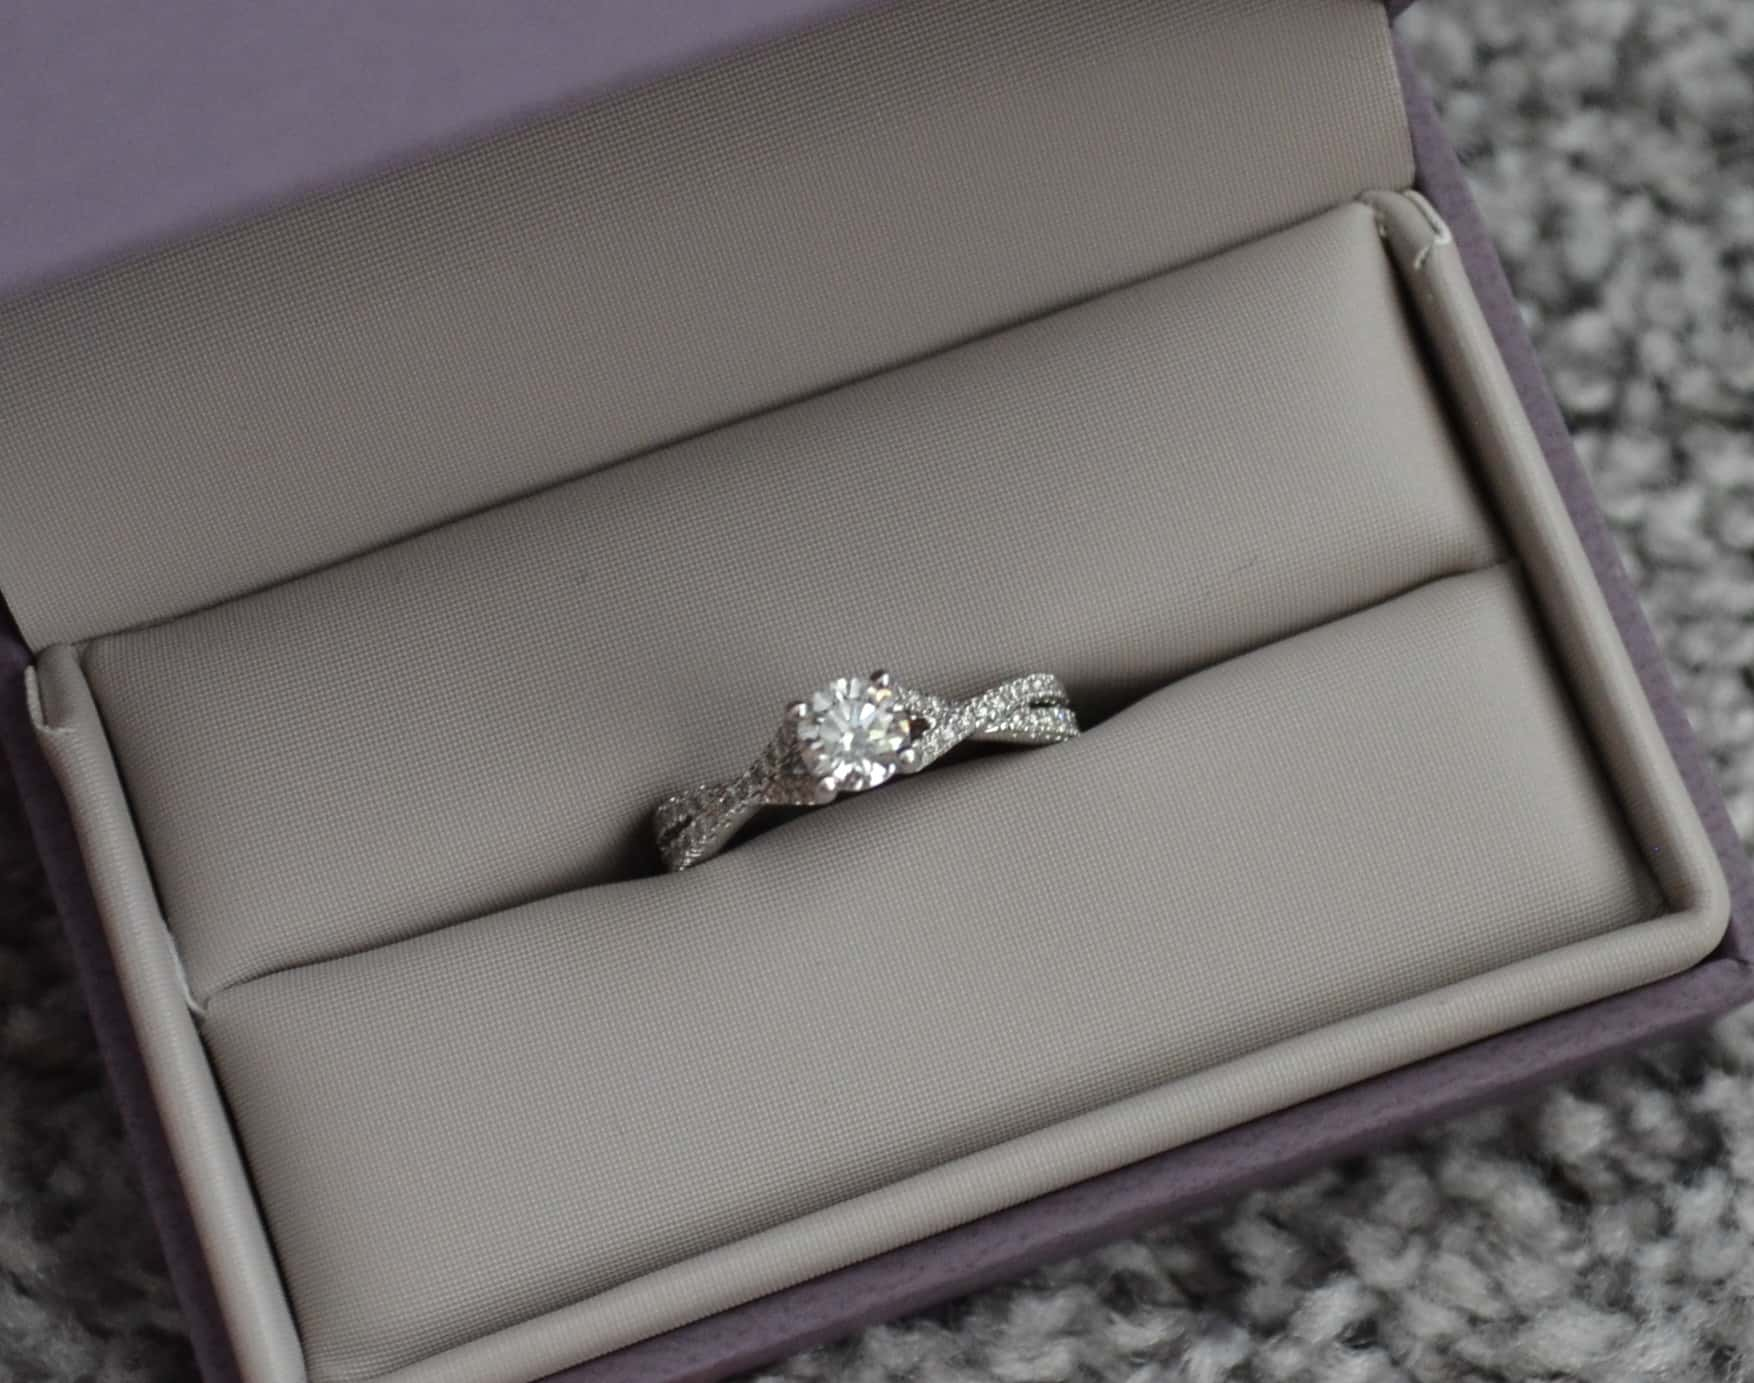 Knowing how you will store your engagement ring while not wearing it is a very important part of ensuring it's always taken care of.